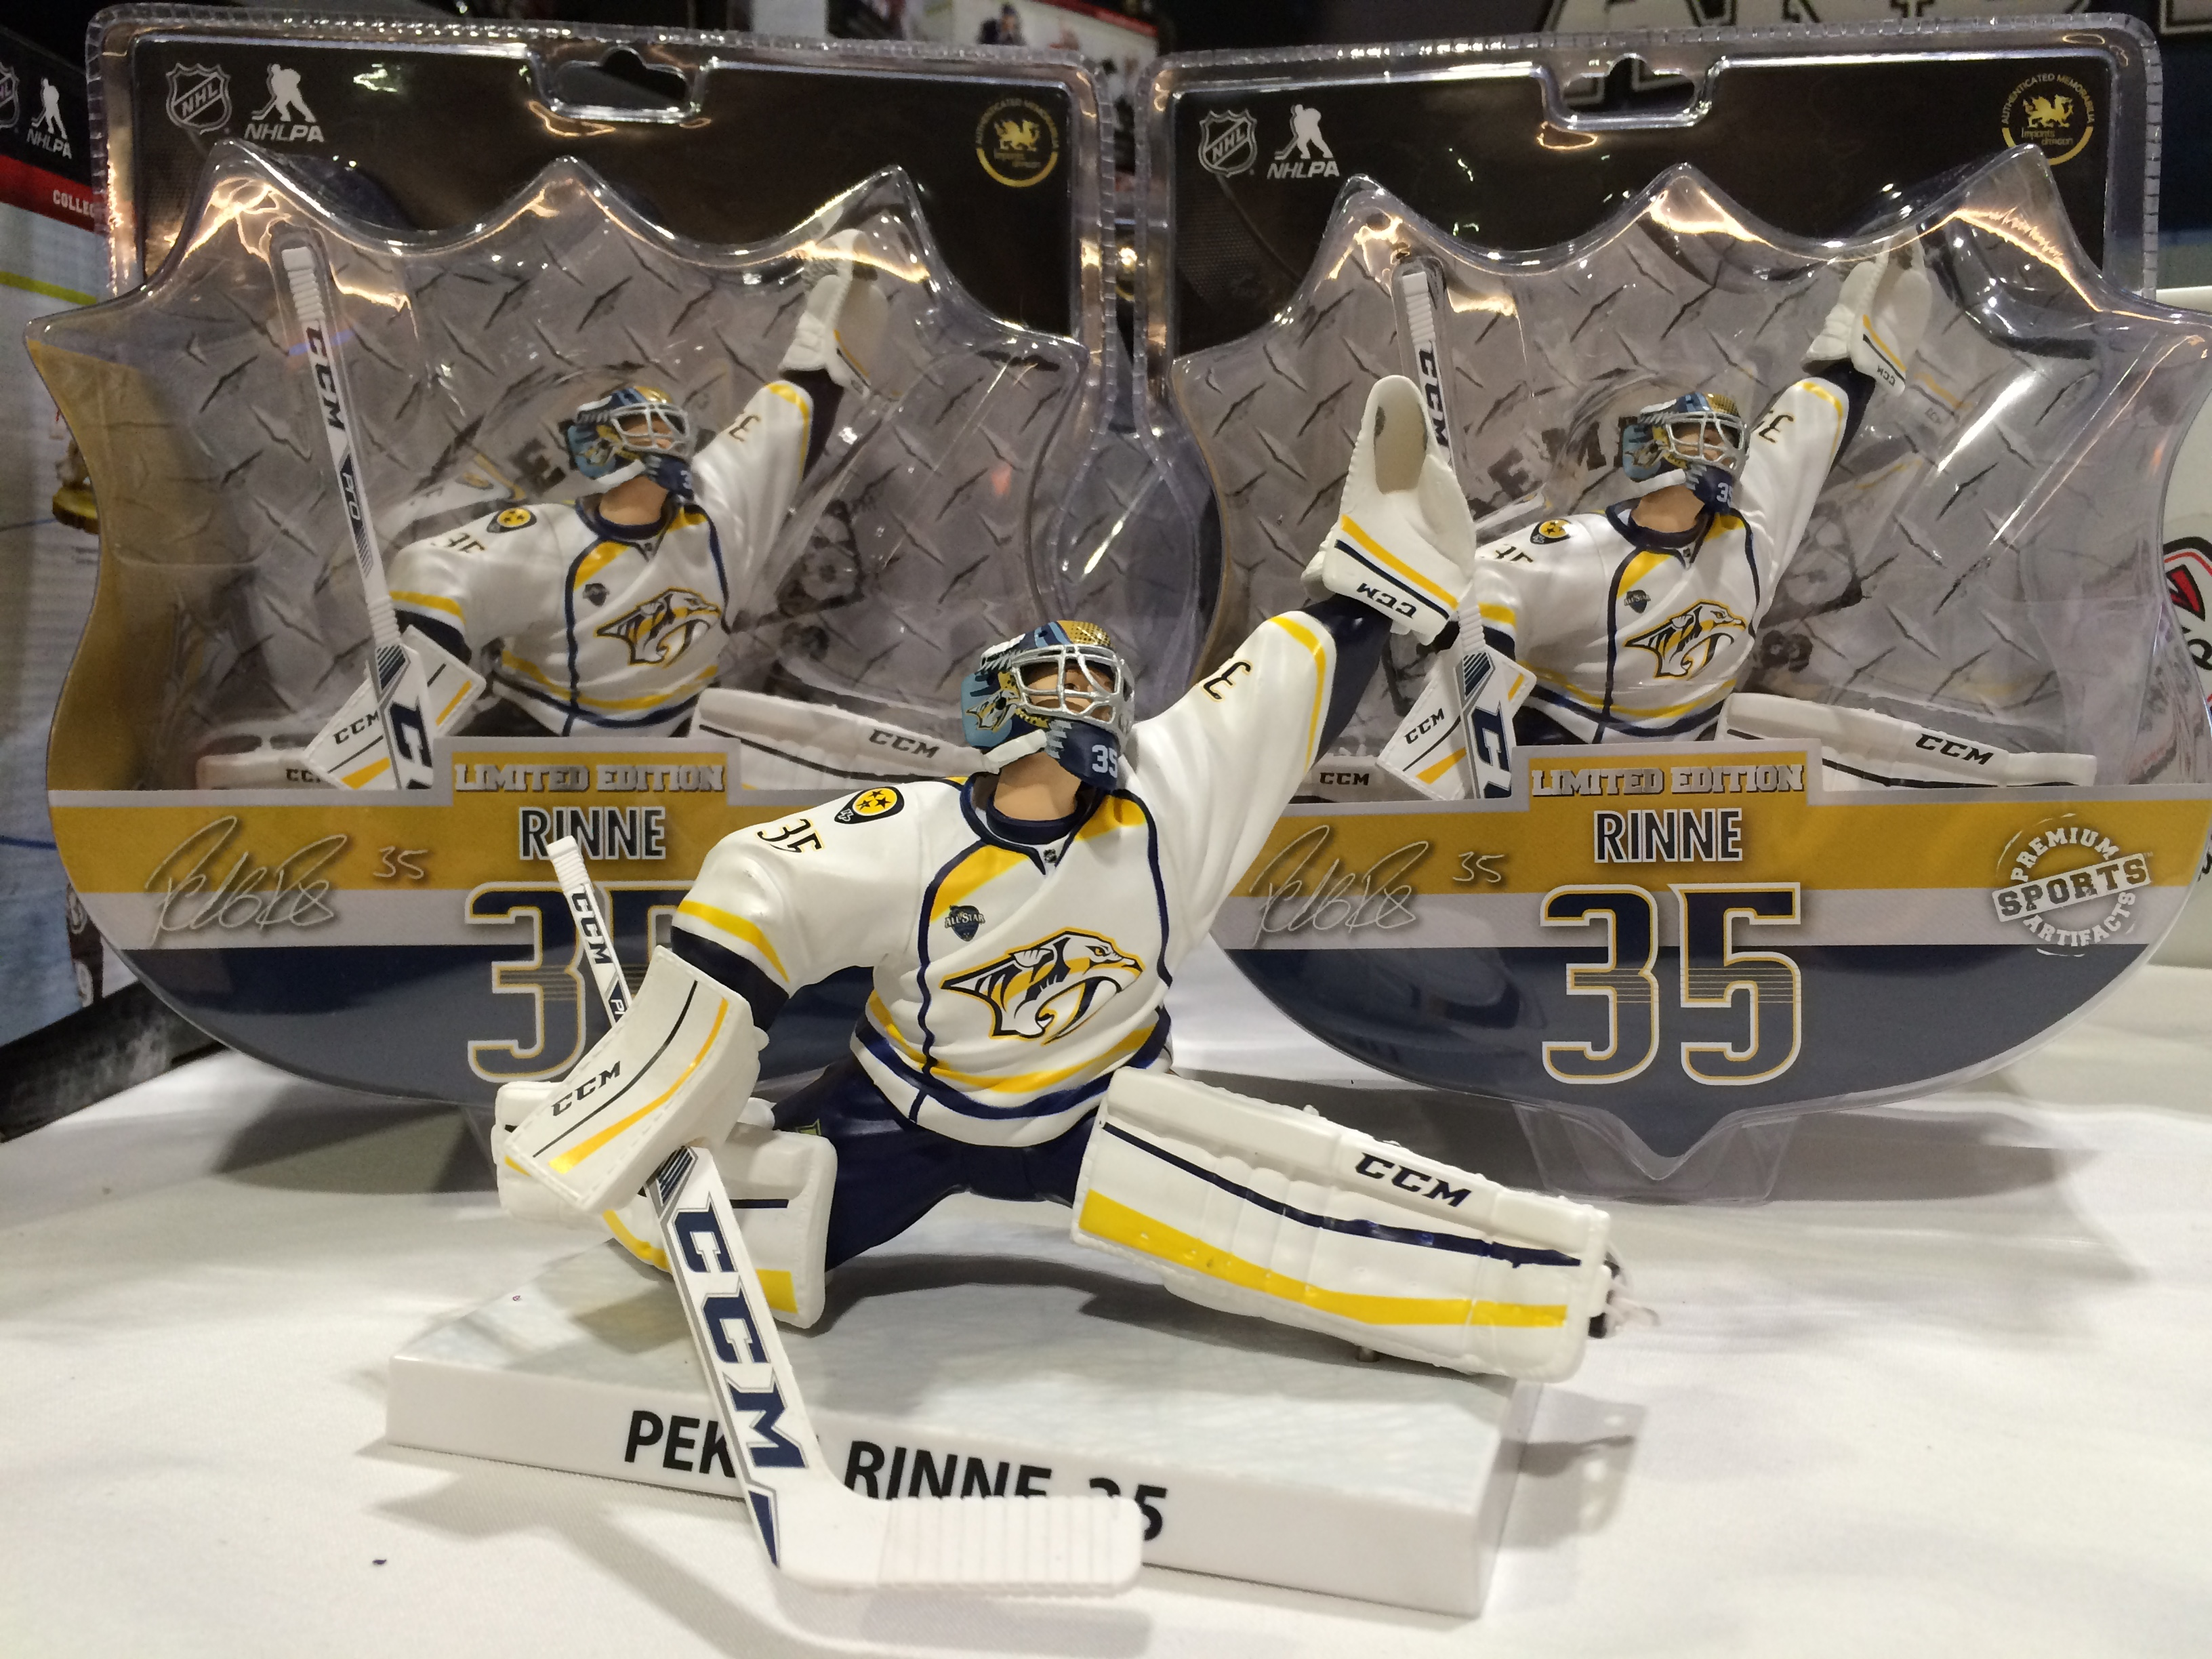 reputable site c7c5d a4afe Imports Dragon offers exclusive NHL All-Star Game figures